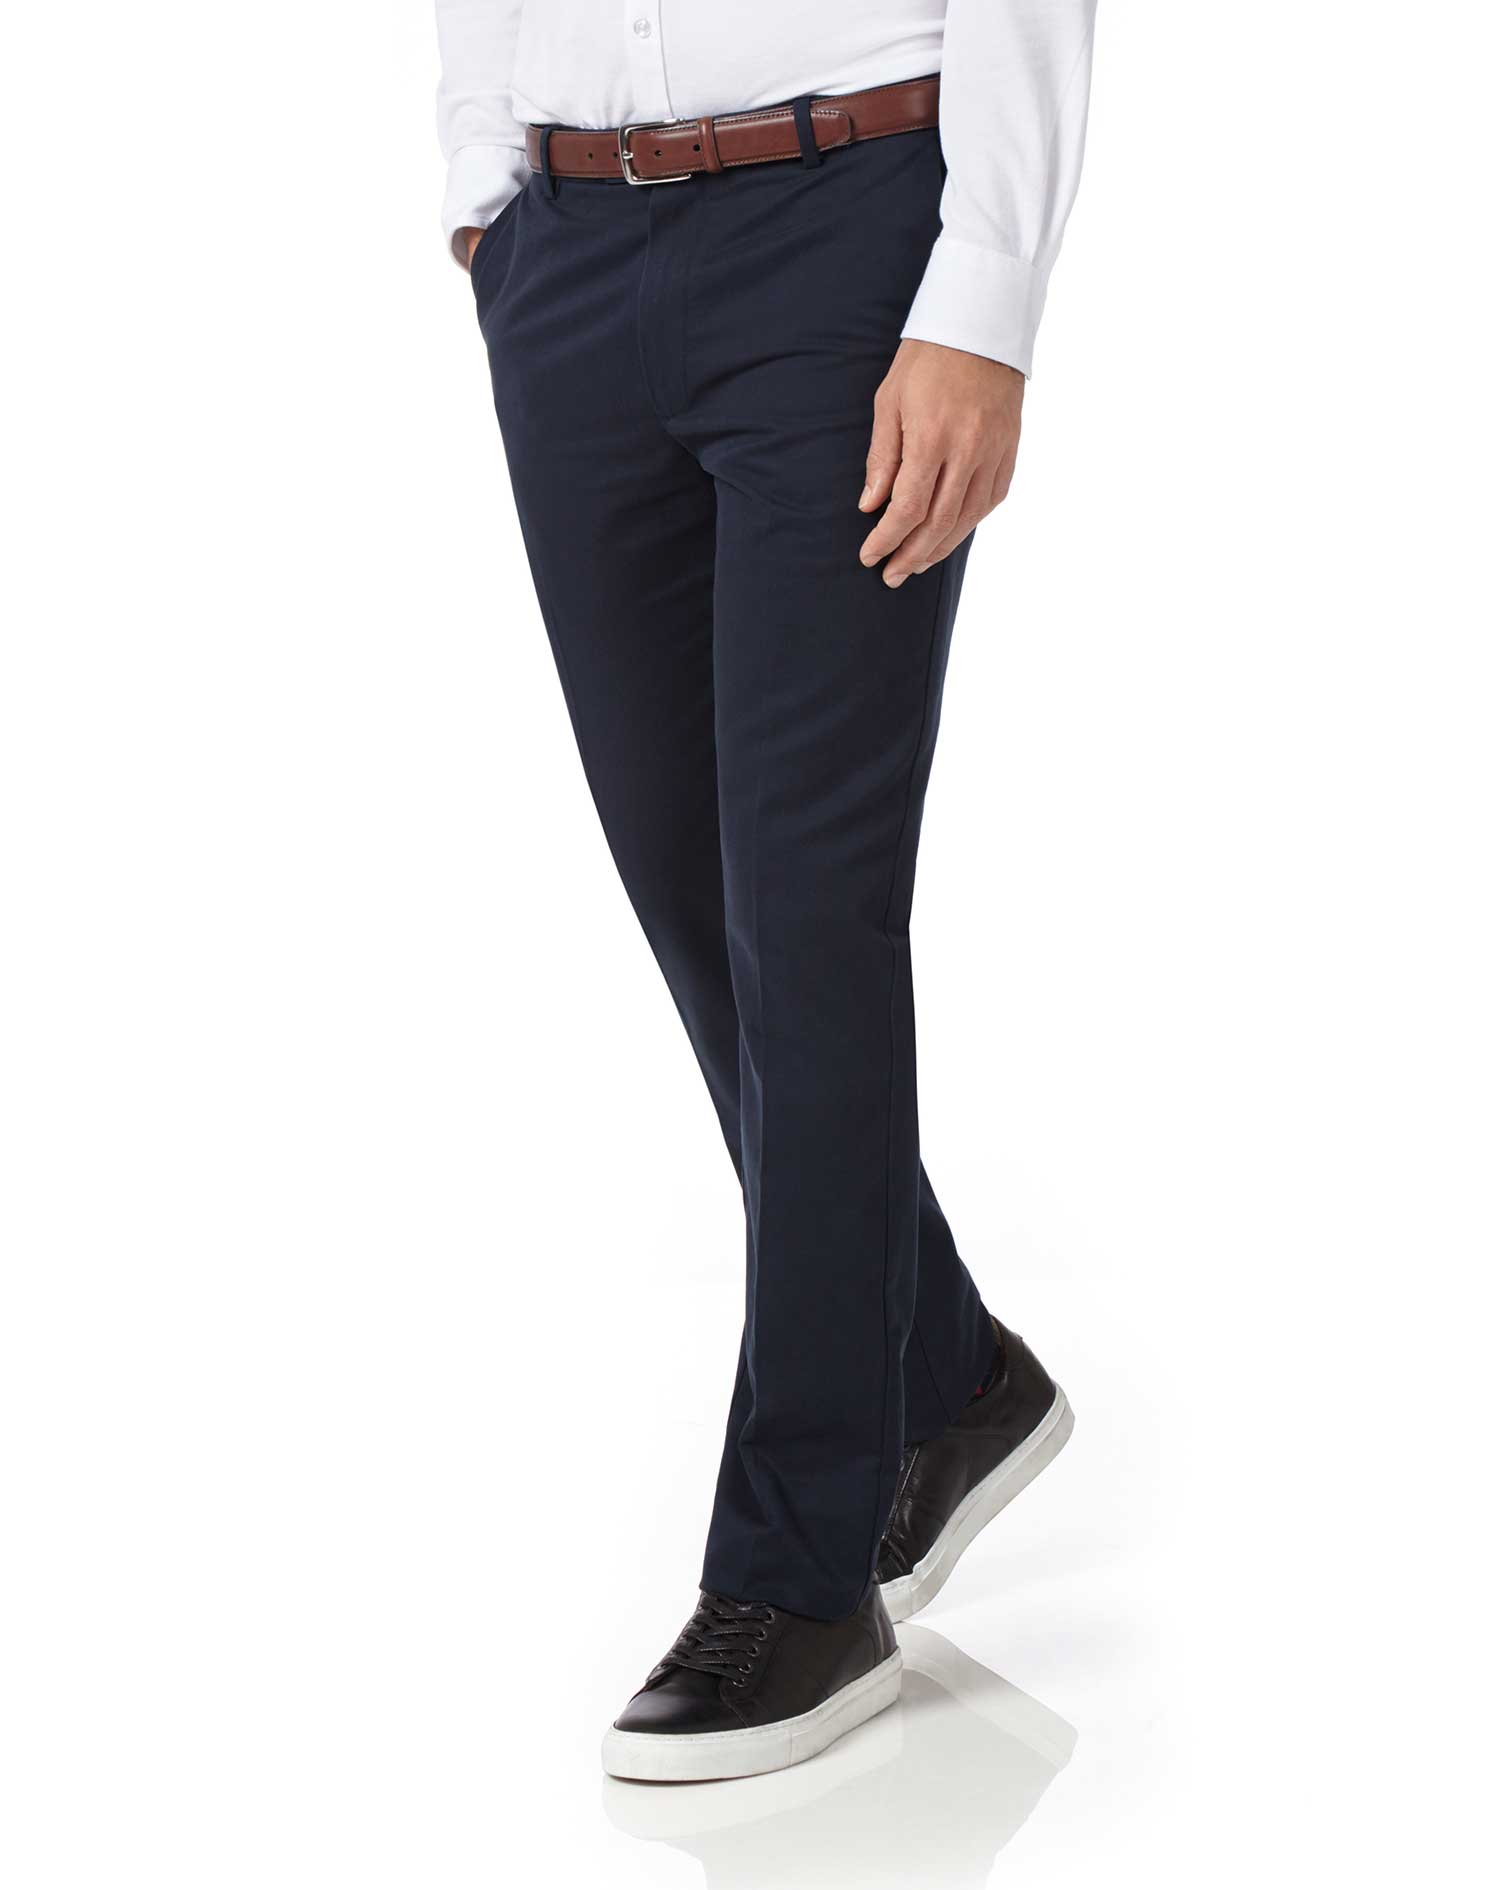 Navy Extra Slim Fit Flat Front Non-Iron Cotton Chino Trousers Size W34 L30 by Charles Tyrwhitt